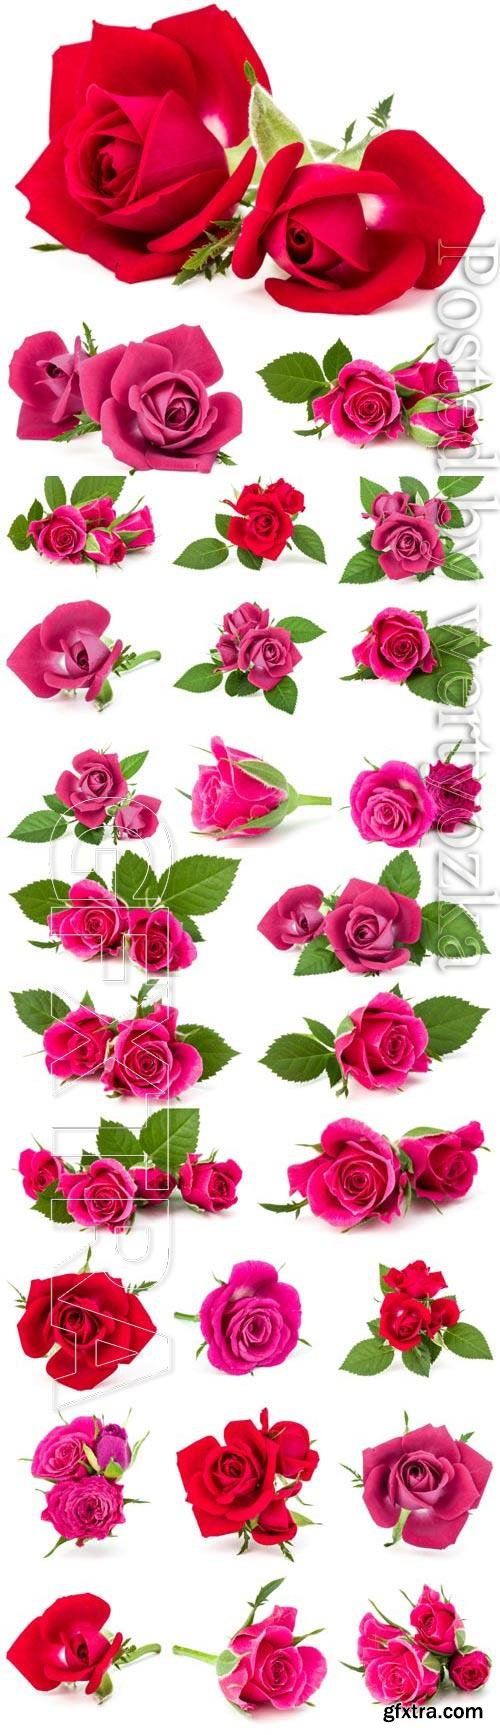 Red and pink roses on white background stock photo